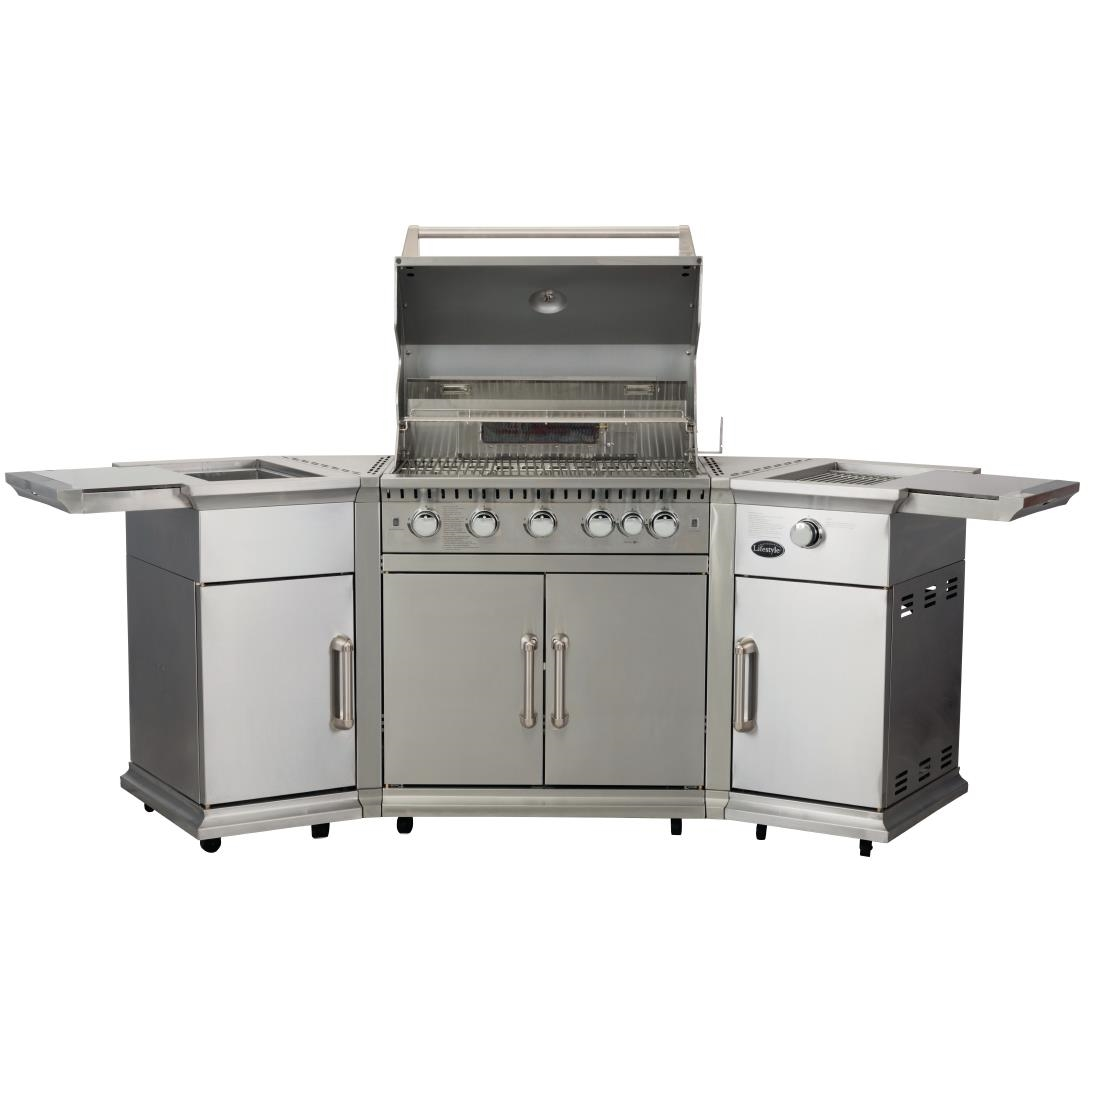 Image of Lifestyle Bahama Island Gas BBQ c/w Rotisserie & Cover LFS680P